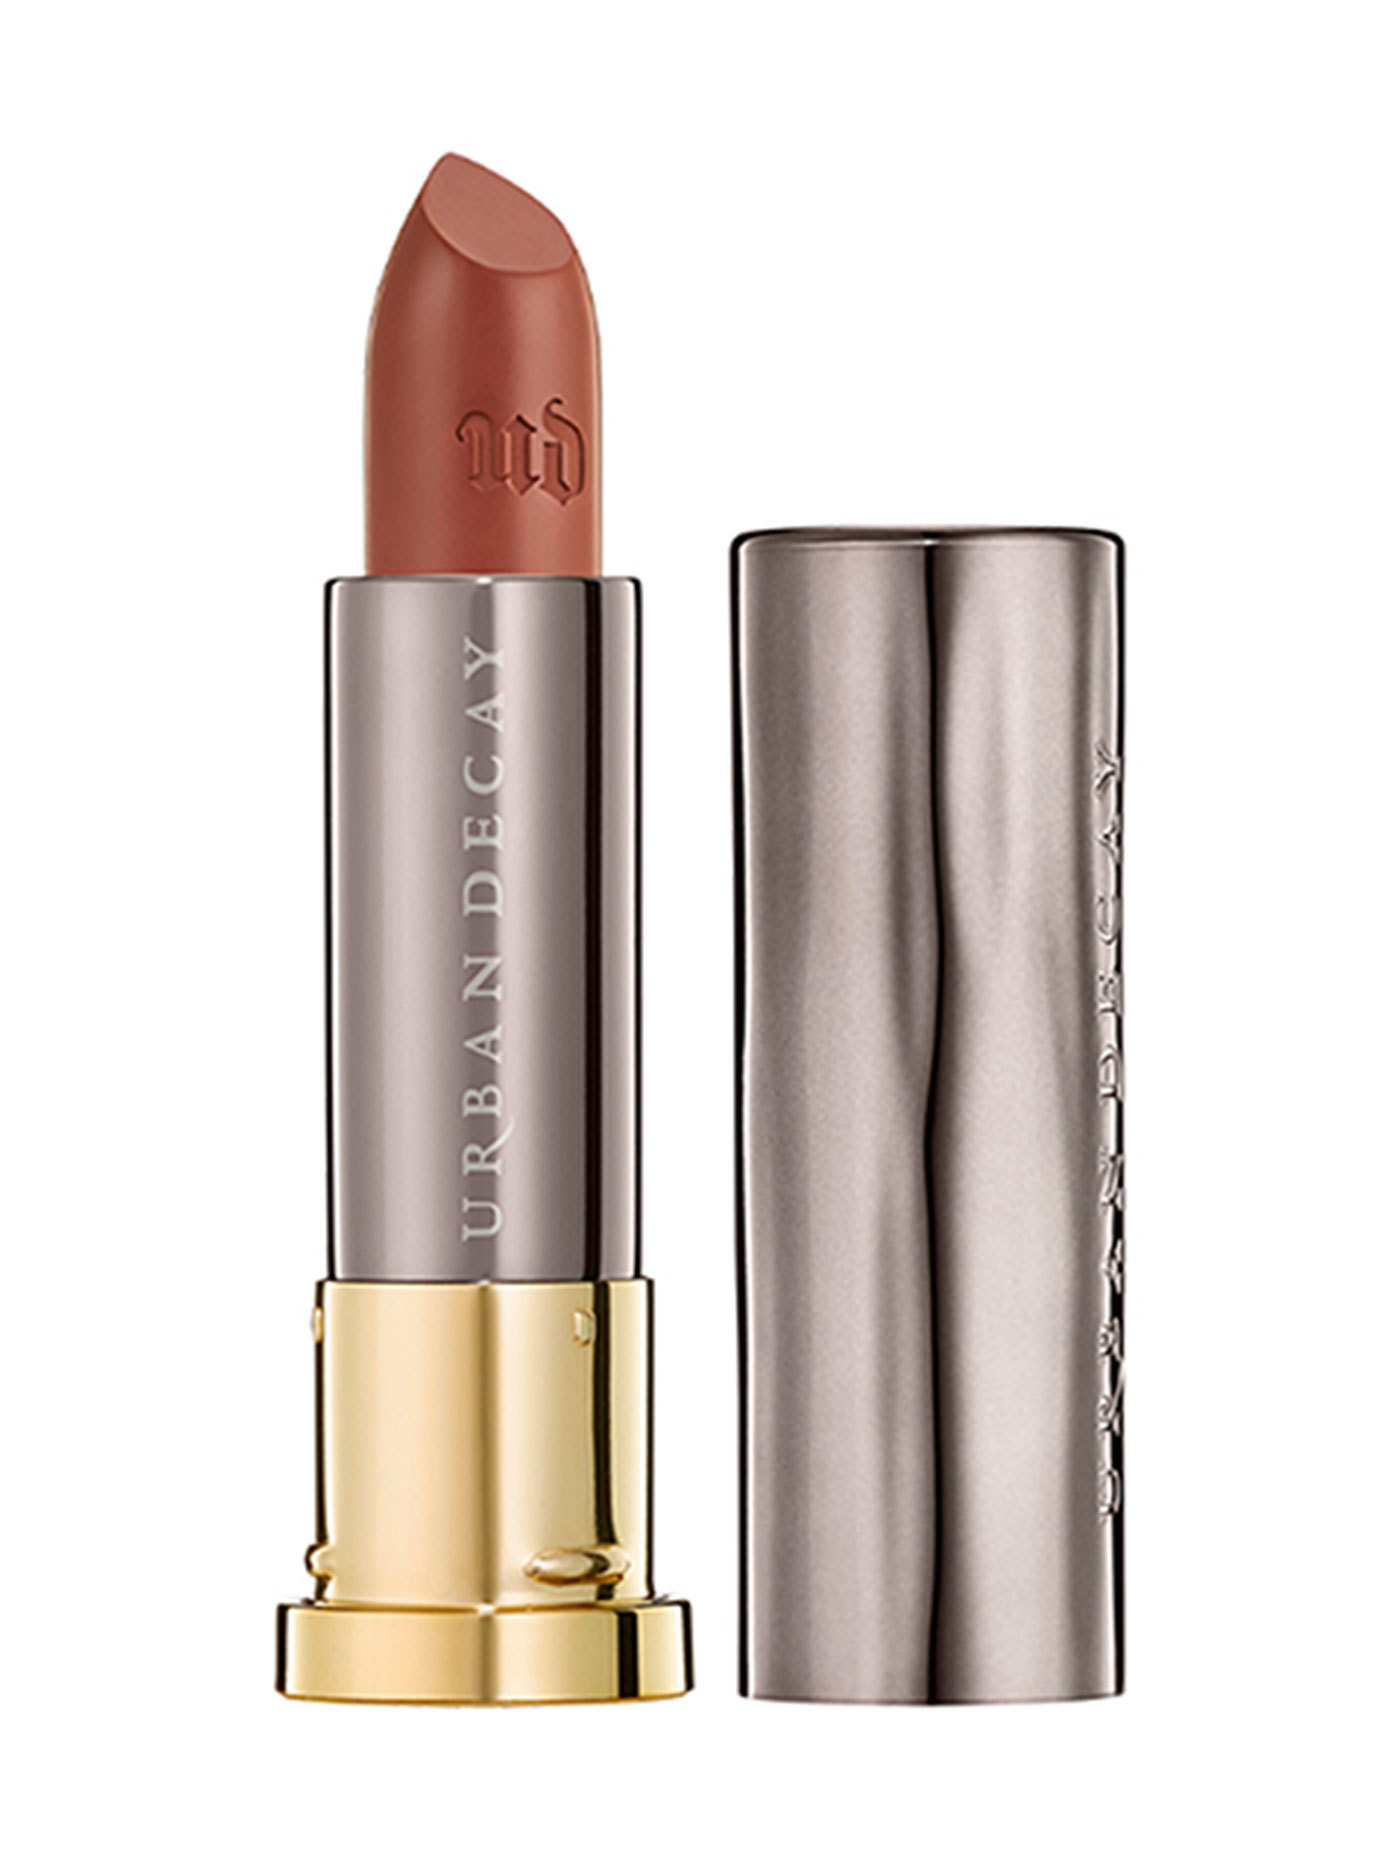 URBAN DECAY Vice Lipstick #Backseat (シエナ) 送料無 追跡有